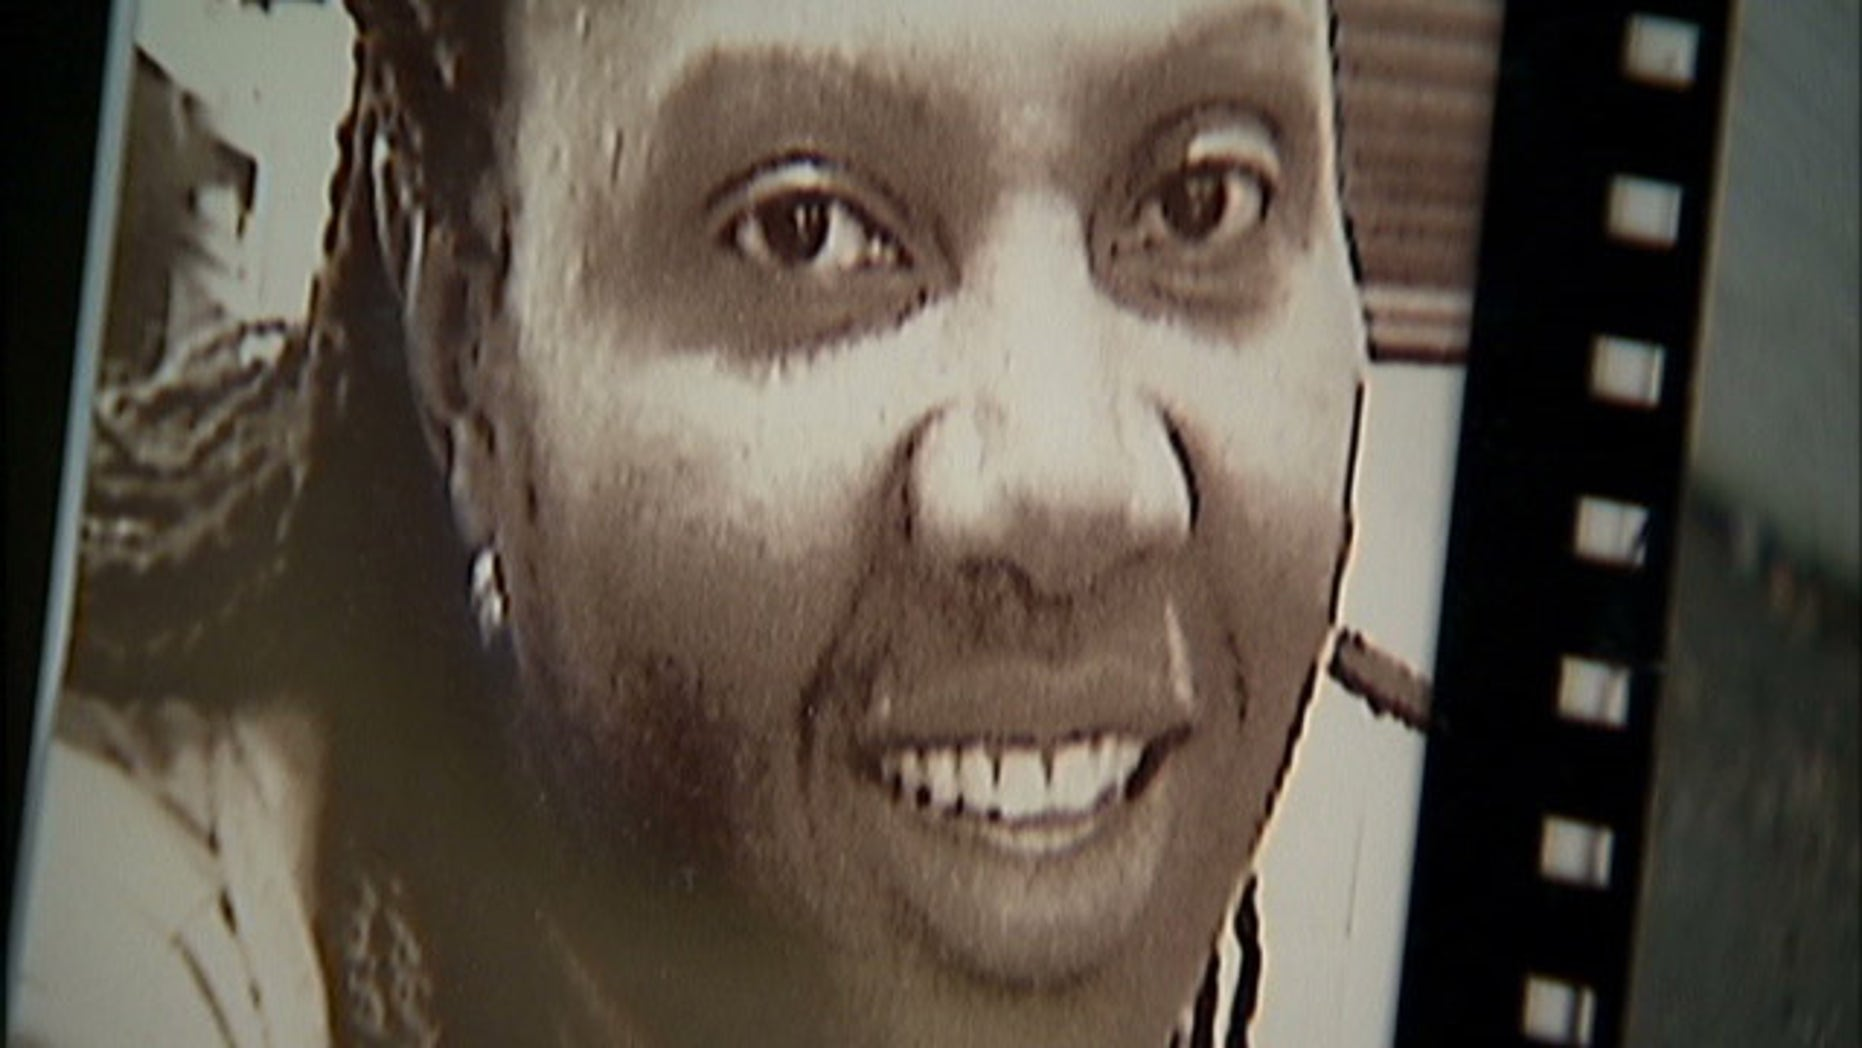 Mulielle Compere, of Brockton, Mass., was allegedly shot through the front door of her home Monday by an unidentified gunman (MyFoxBoston.com).